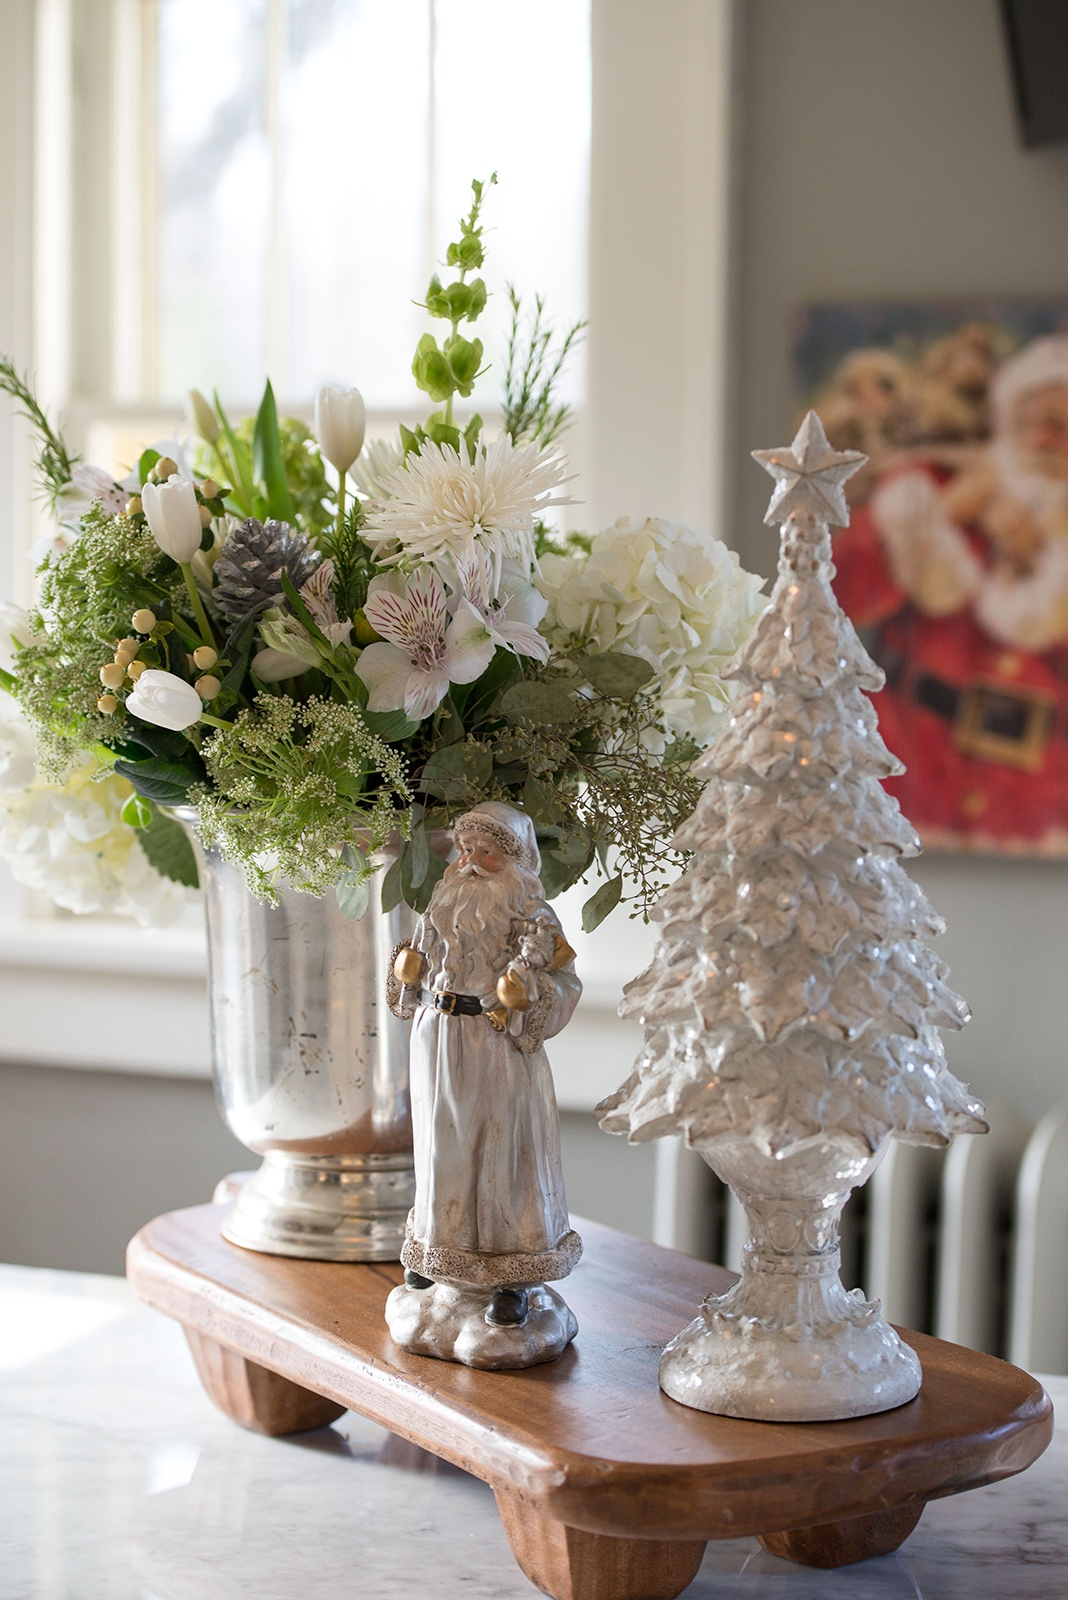 Winter whites are always a favorite way to decorate during the holidays.